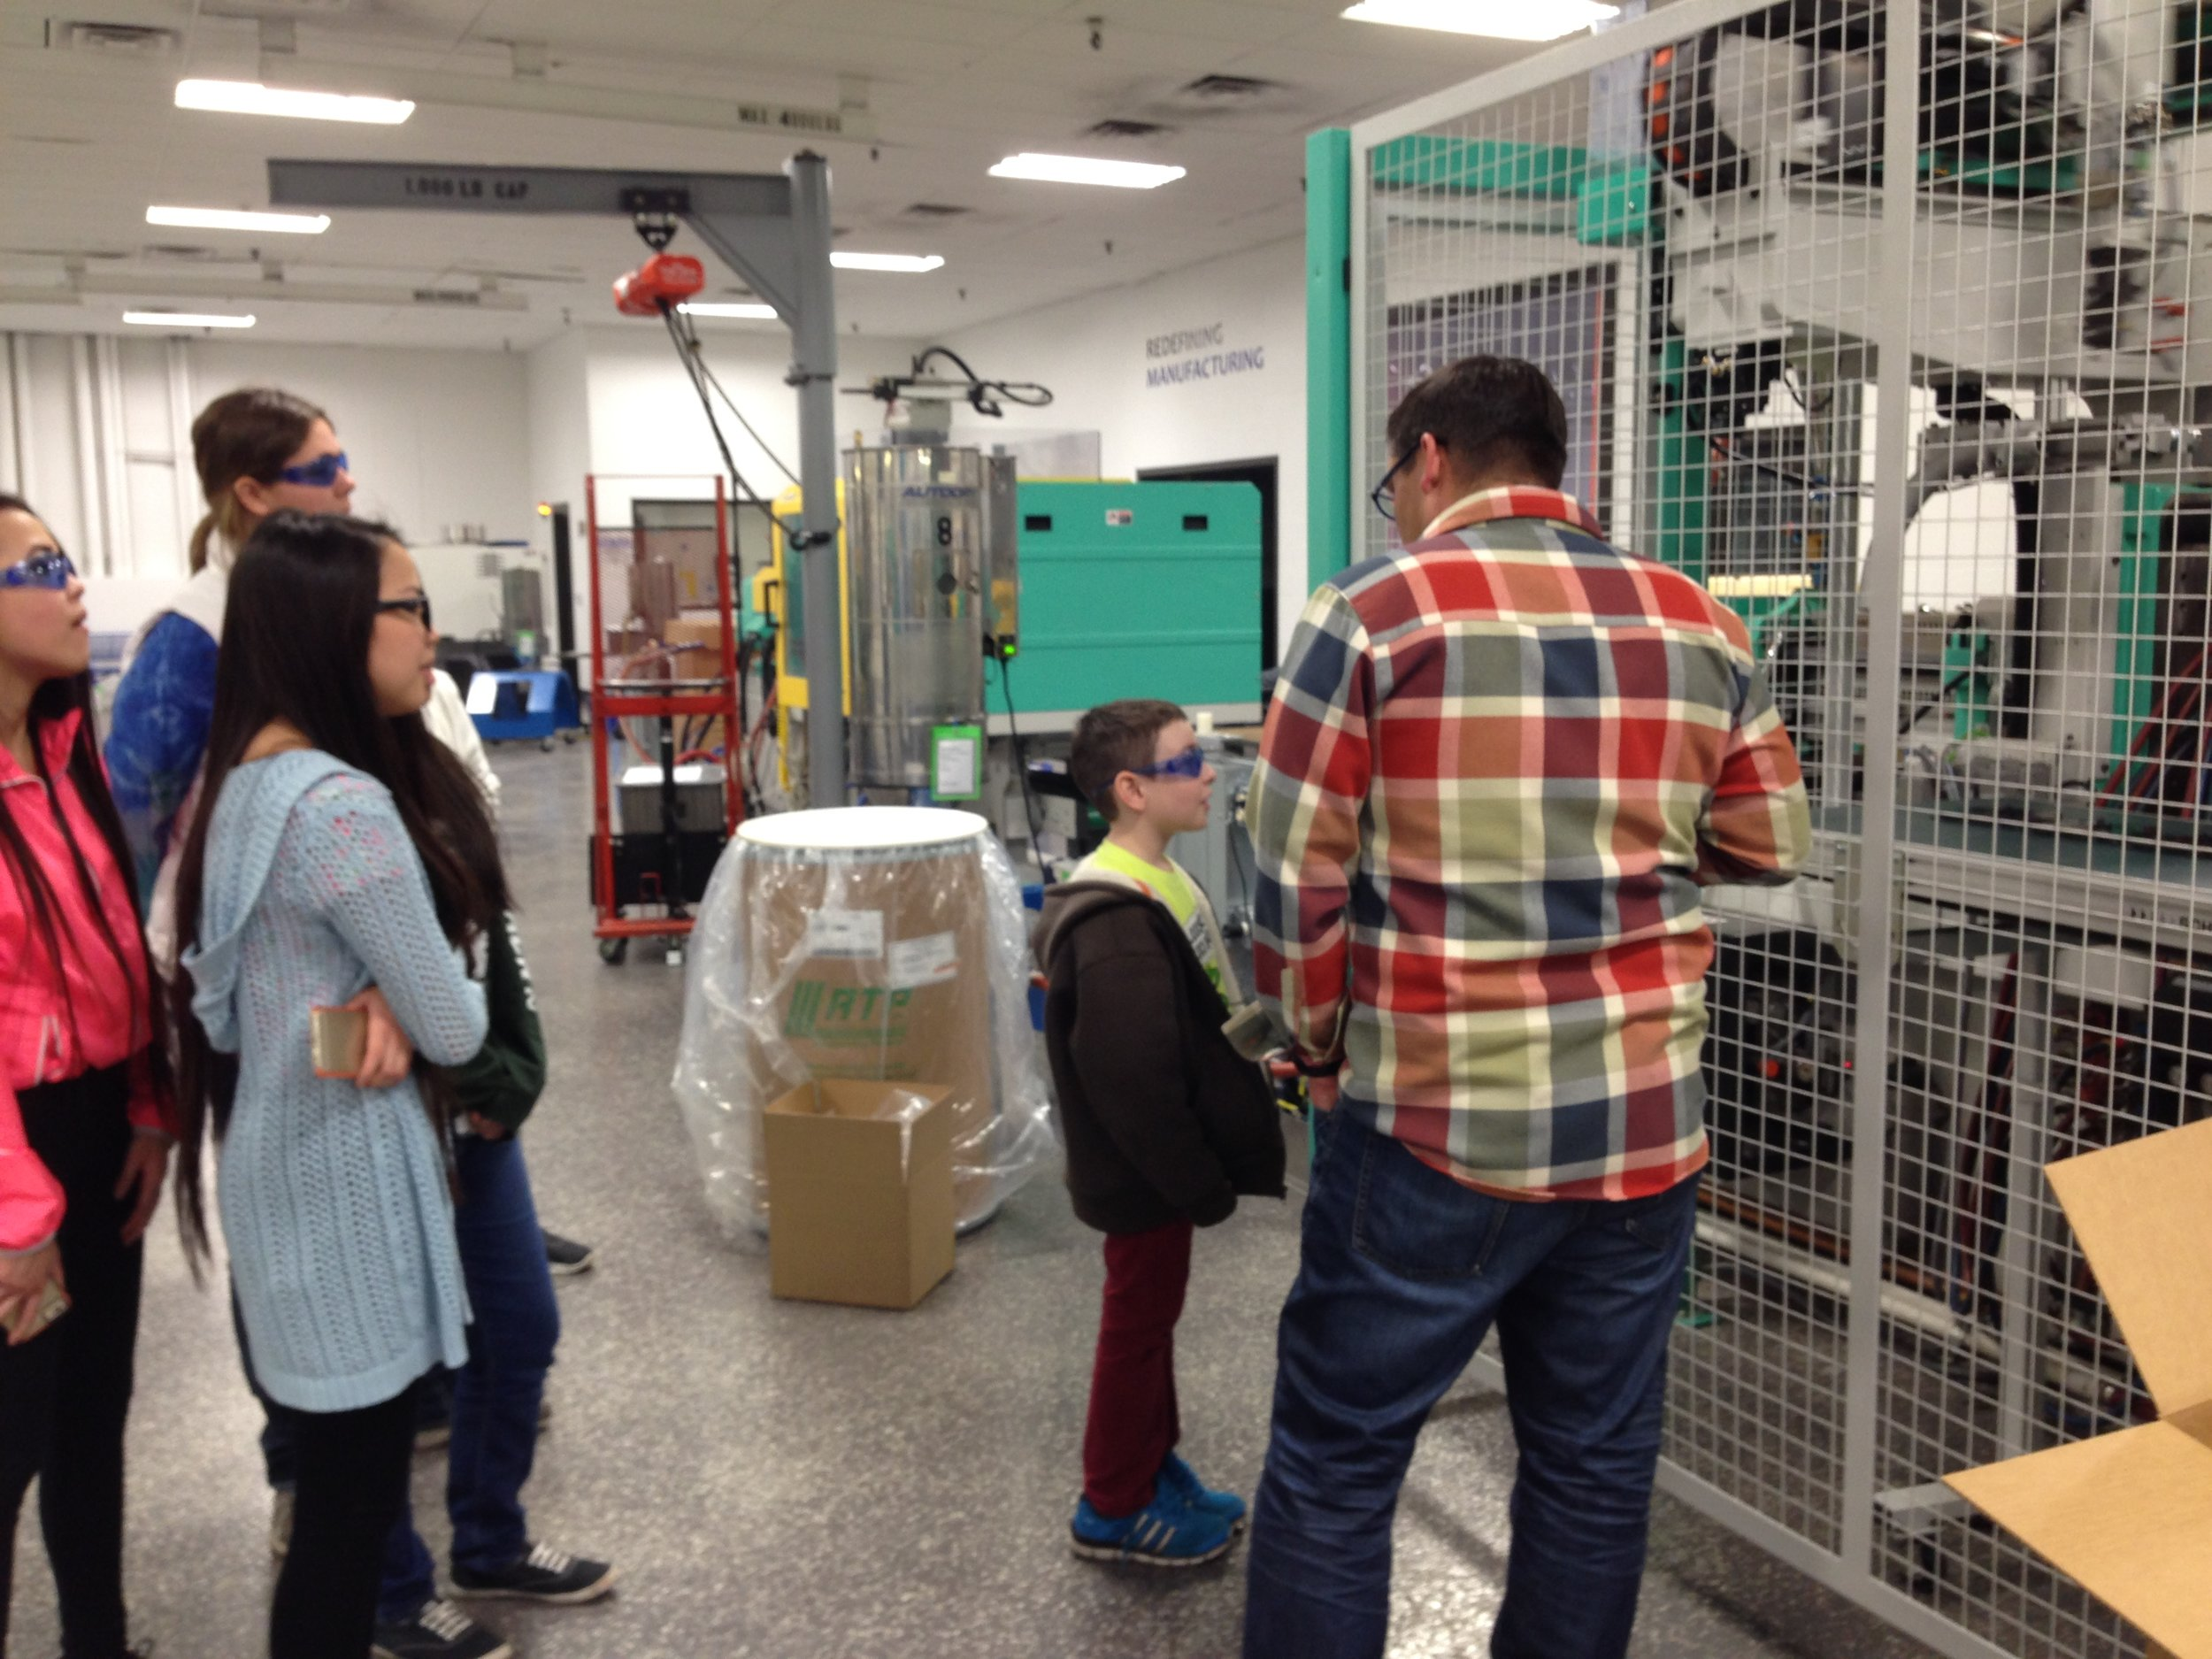 Giving tours to our future generation of manufacturers! #OpenDoorPolicy